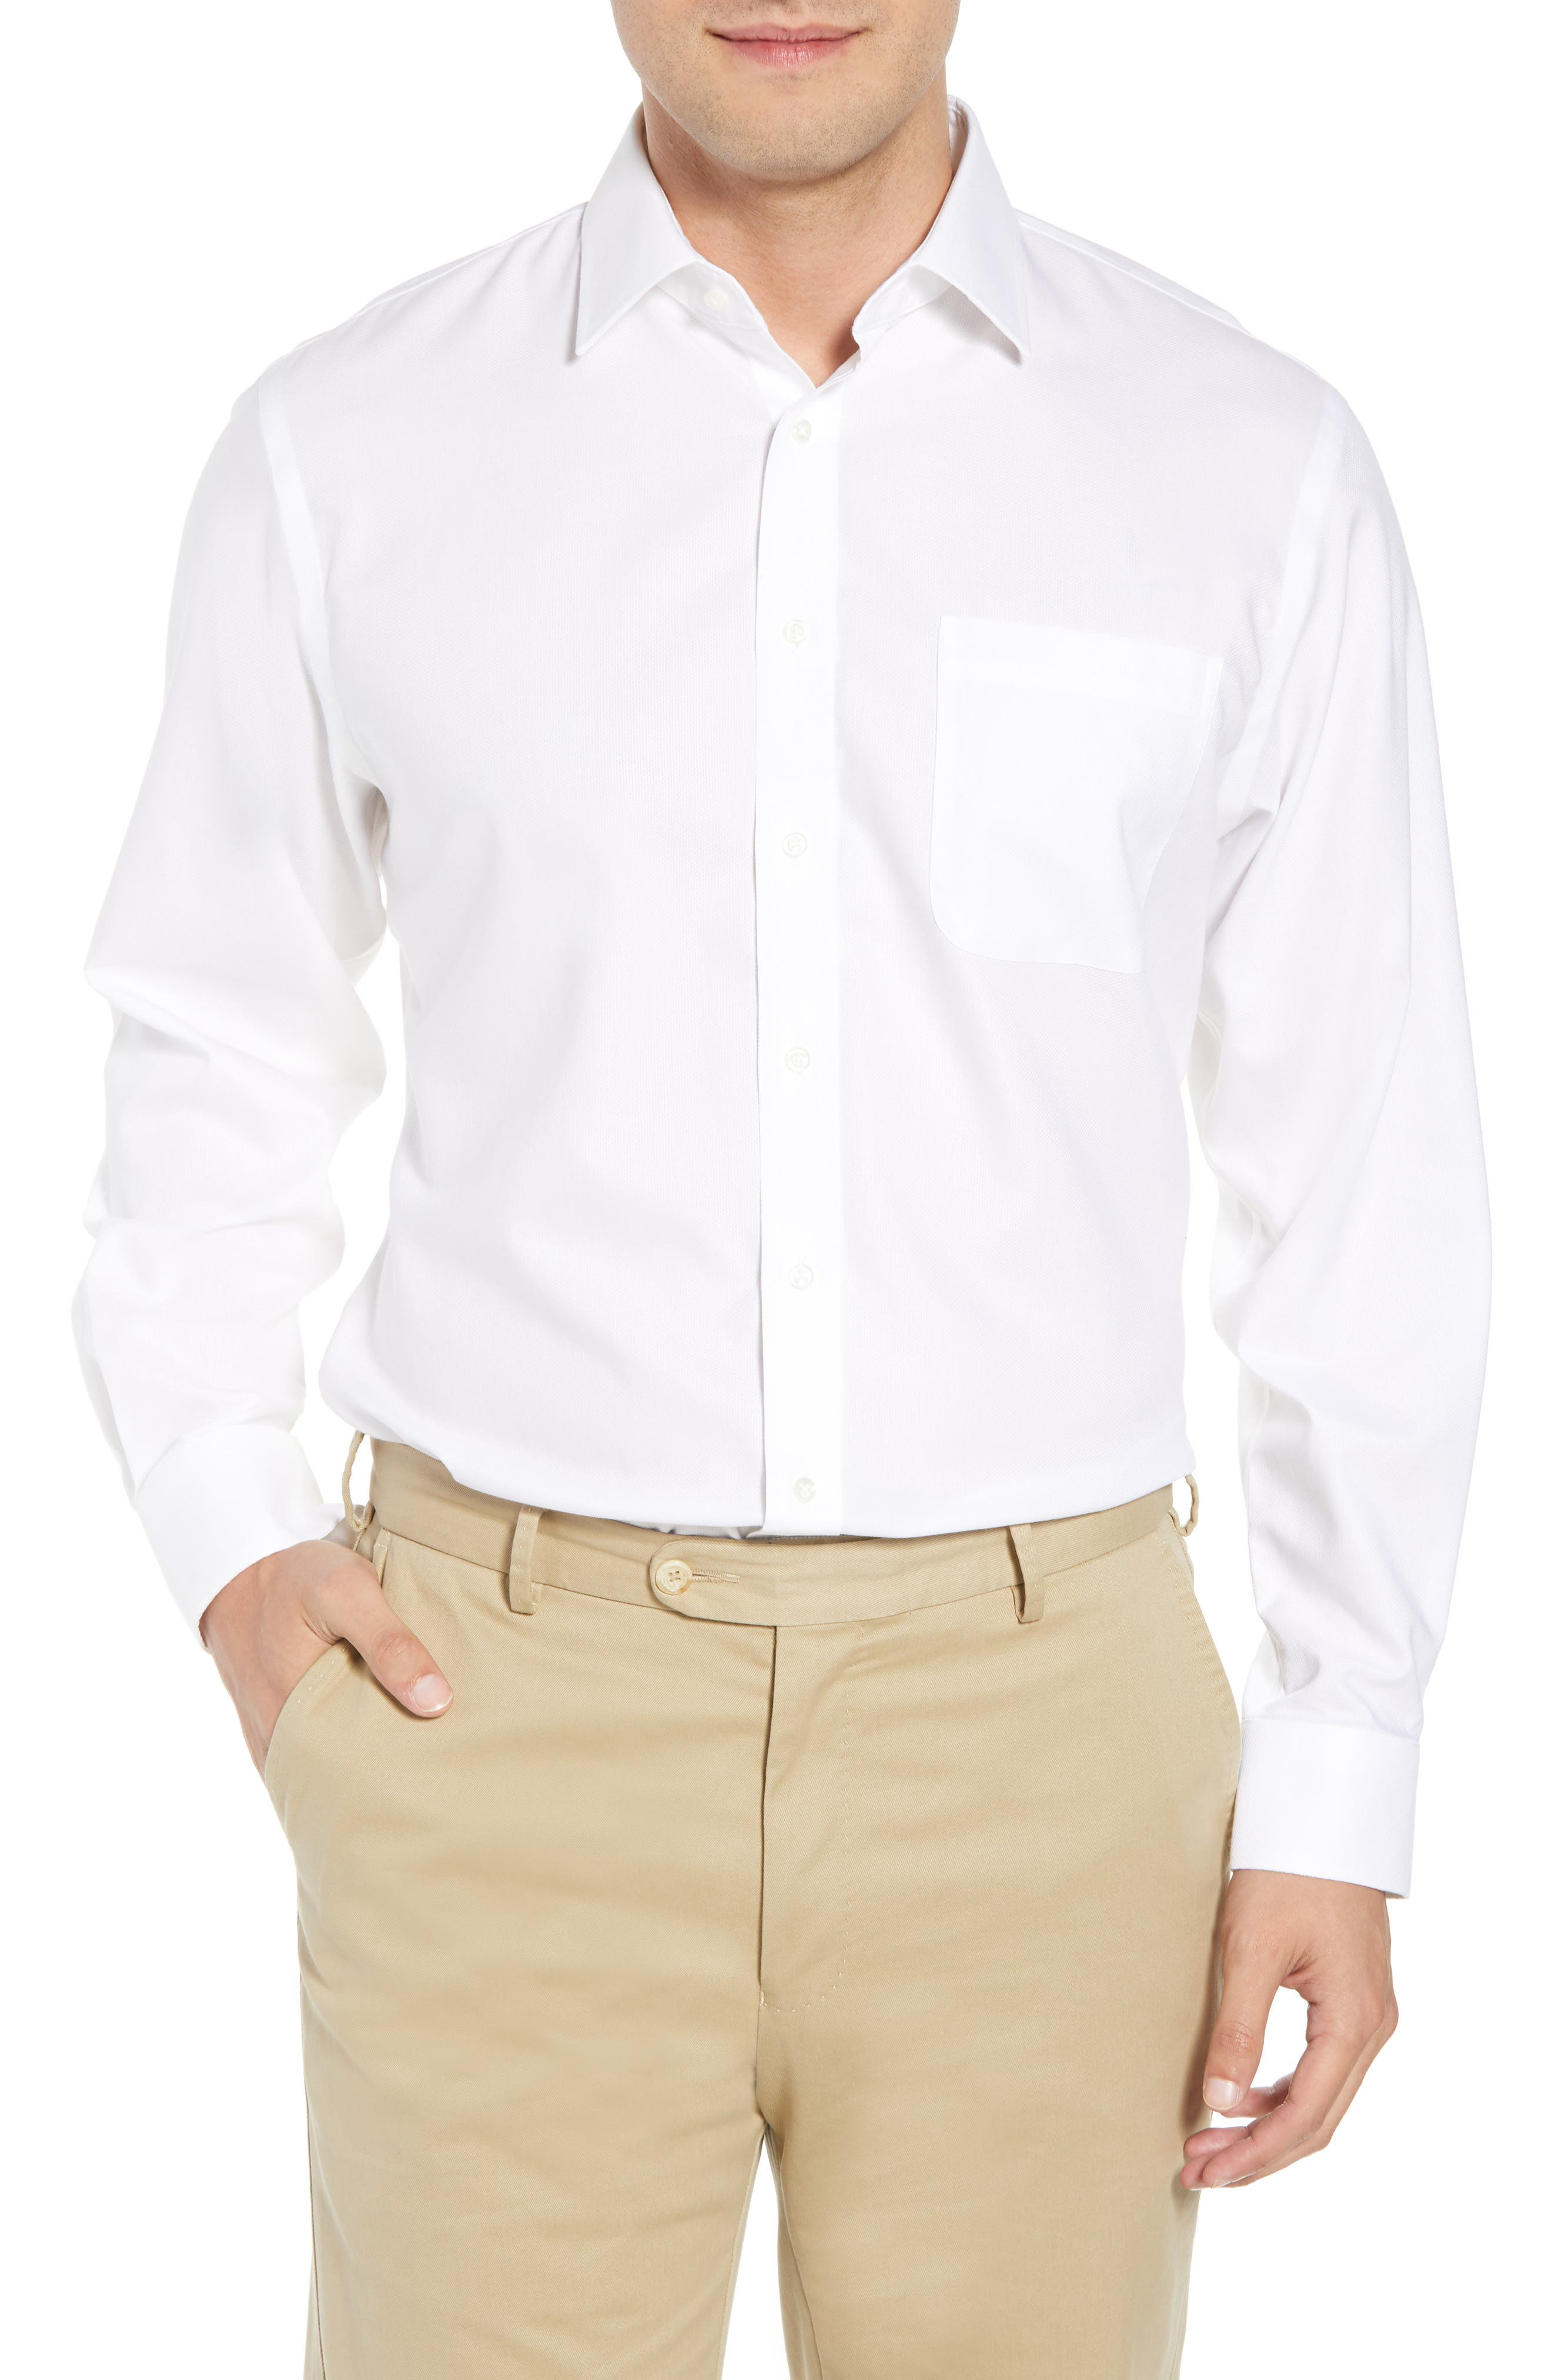 Smartcare<sup>™</sup> Traditional Fit Solid Dress Shirt,                             Main thumbnail 1, color,                             White